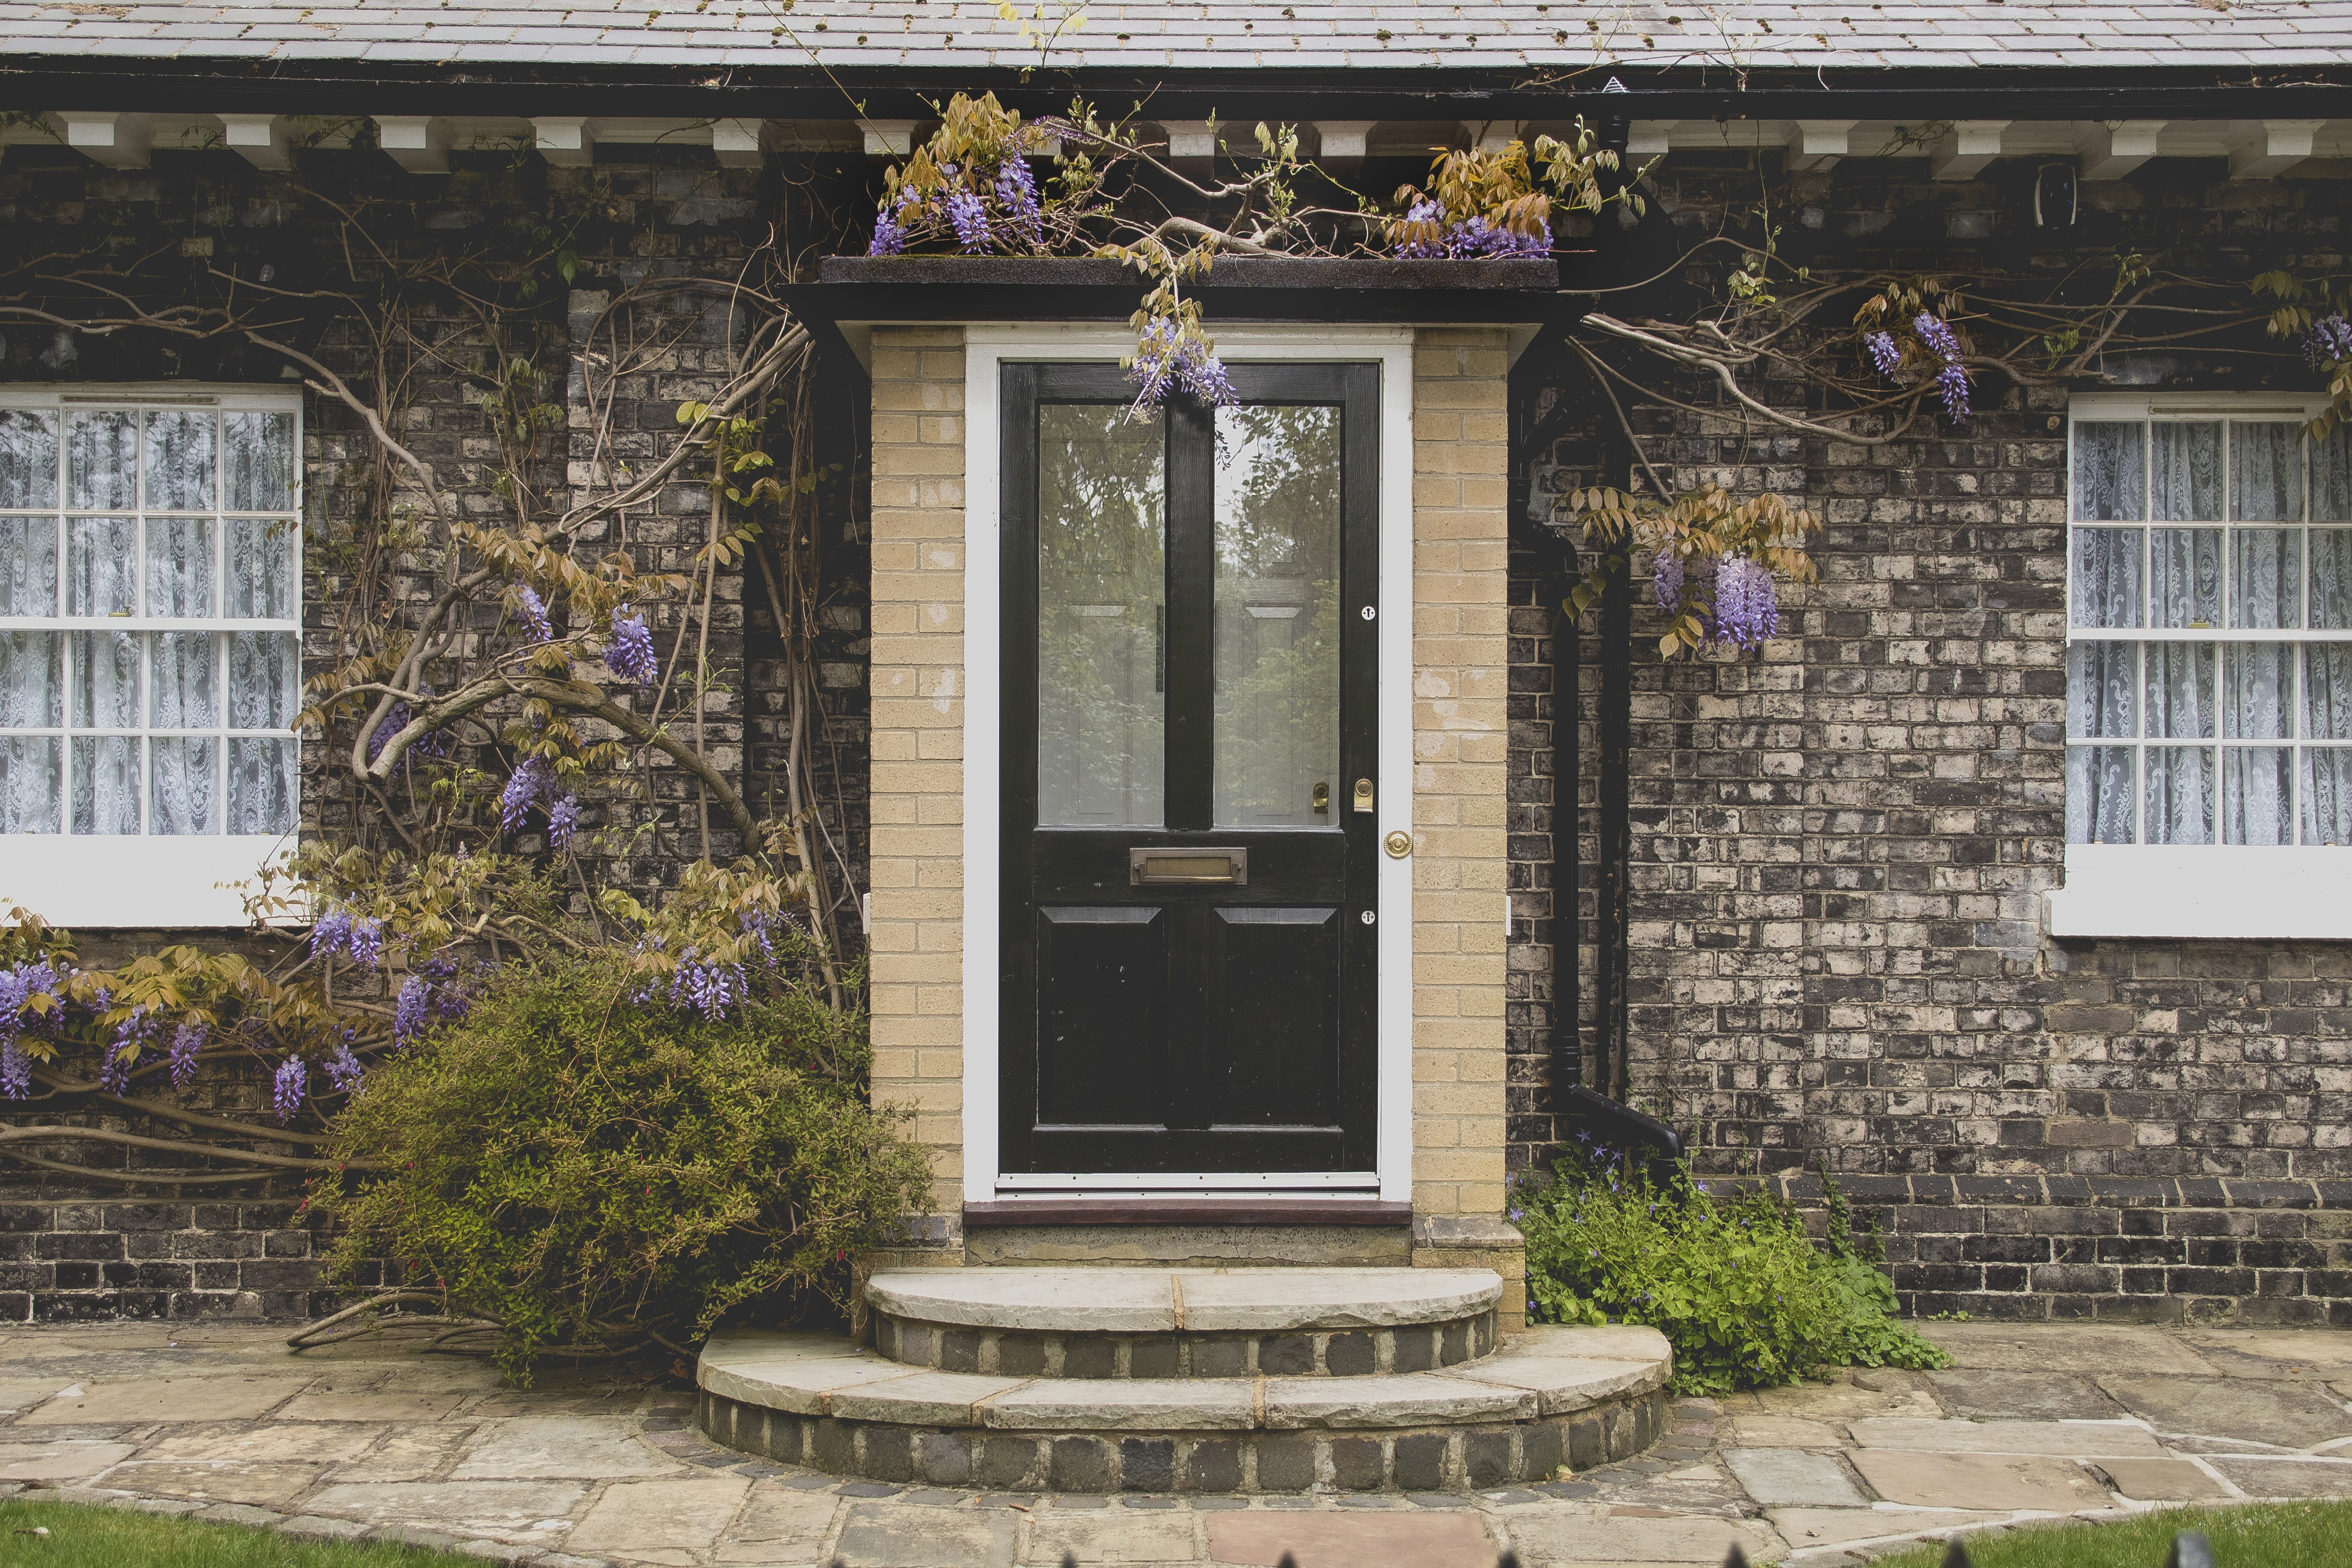 The front door to a house with a flowering bush climbing on the porch